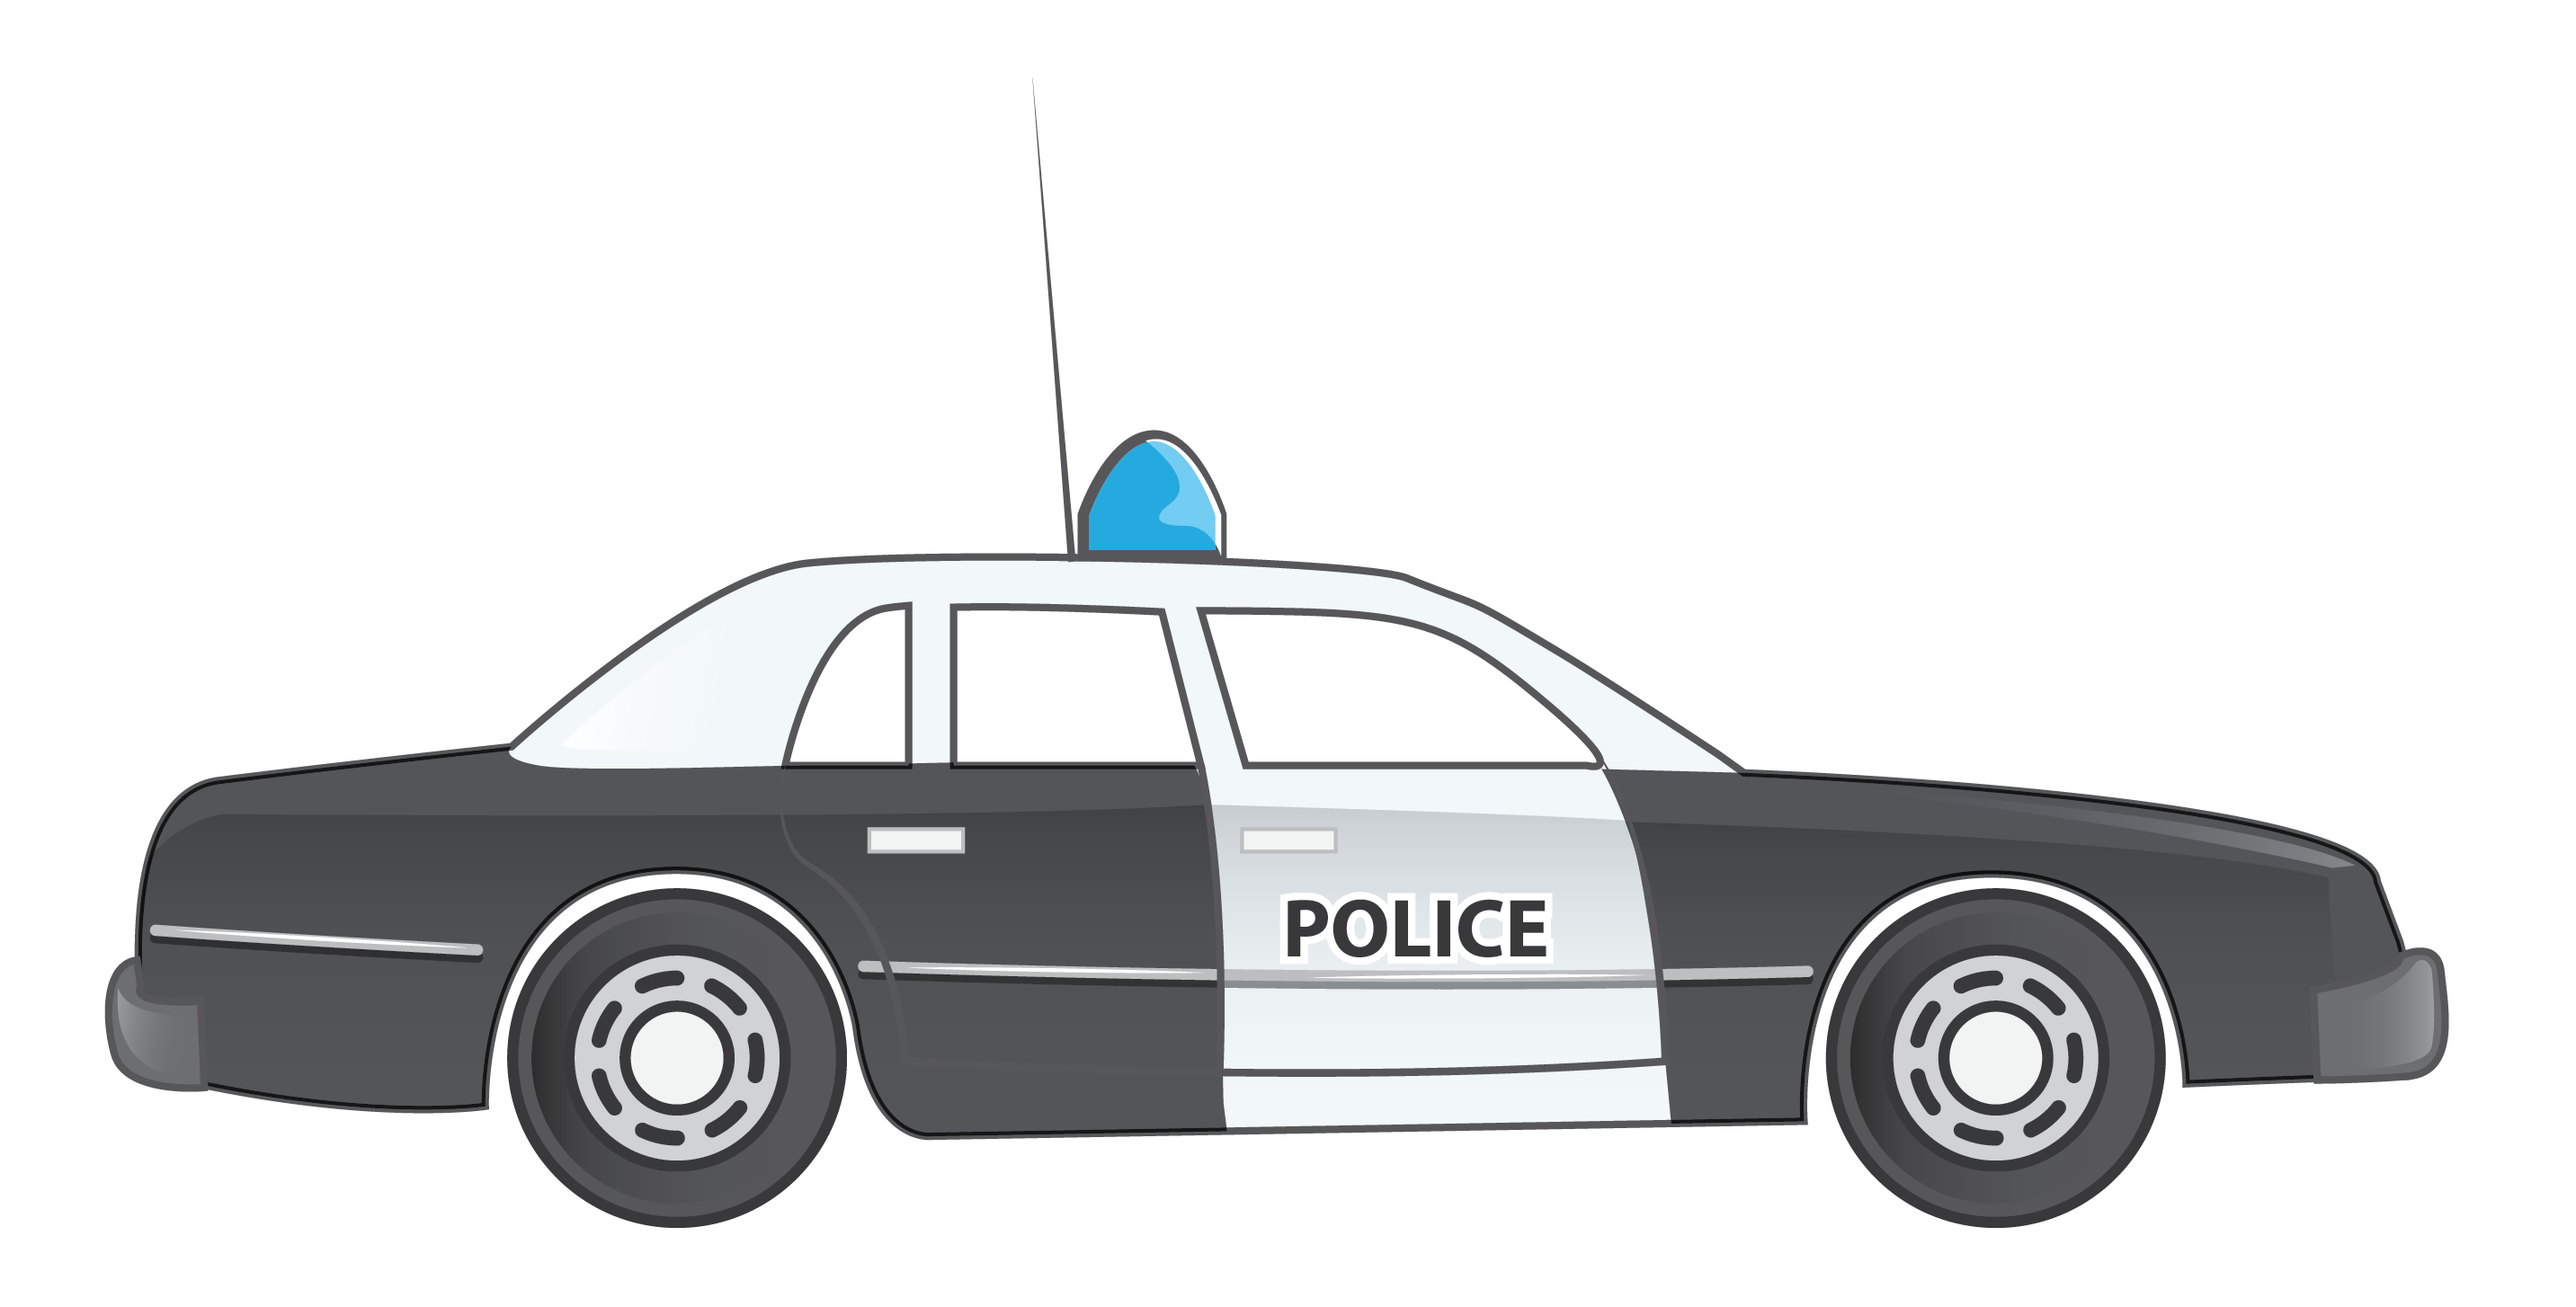 Police Car Free To Use Clipart 2-Police car free to use clipart 2-15